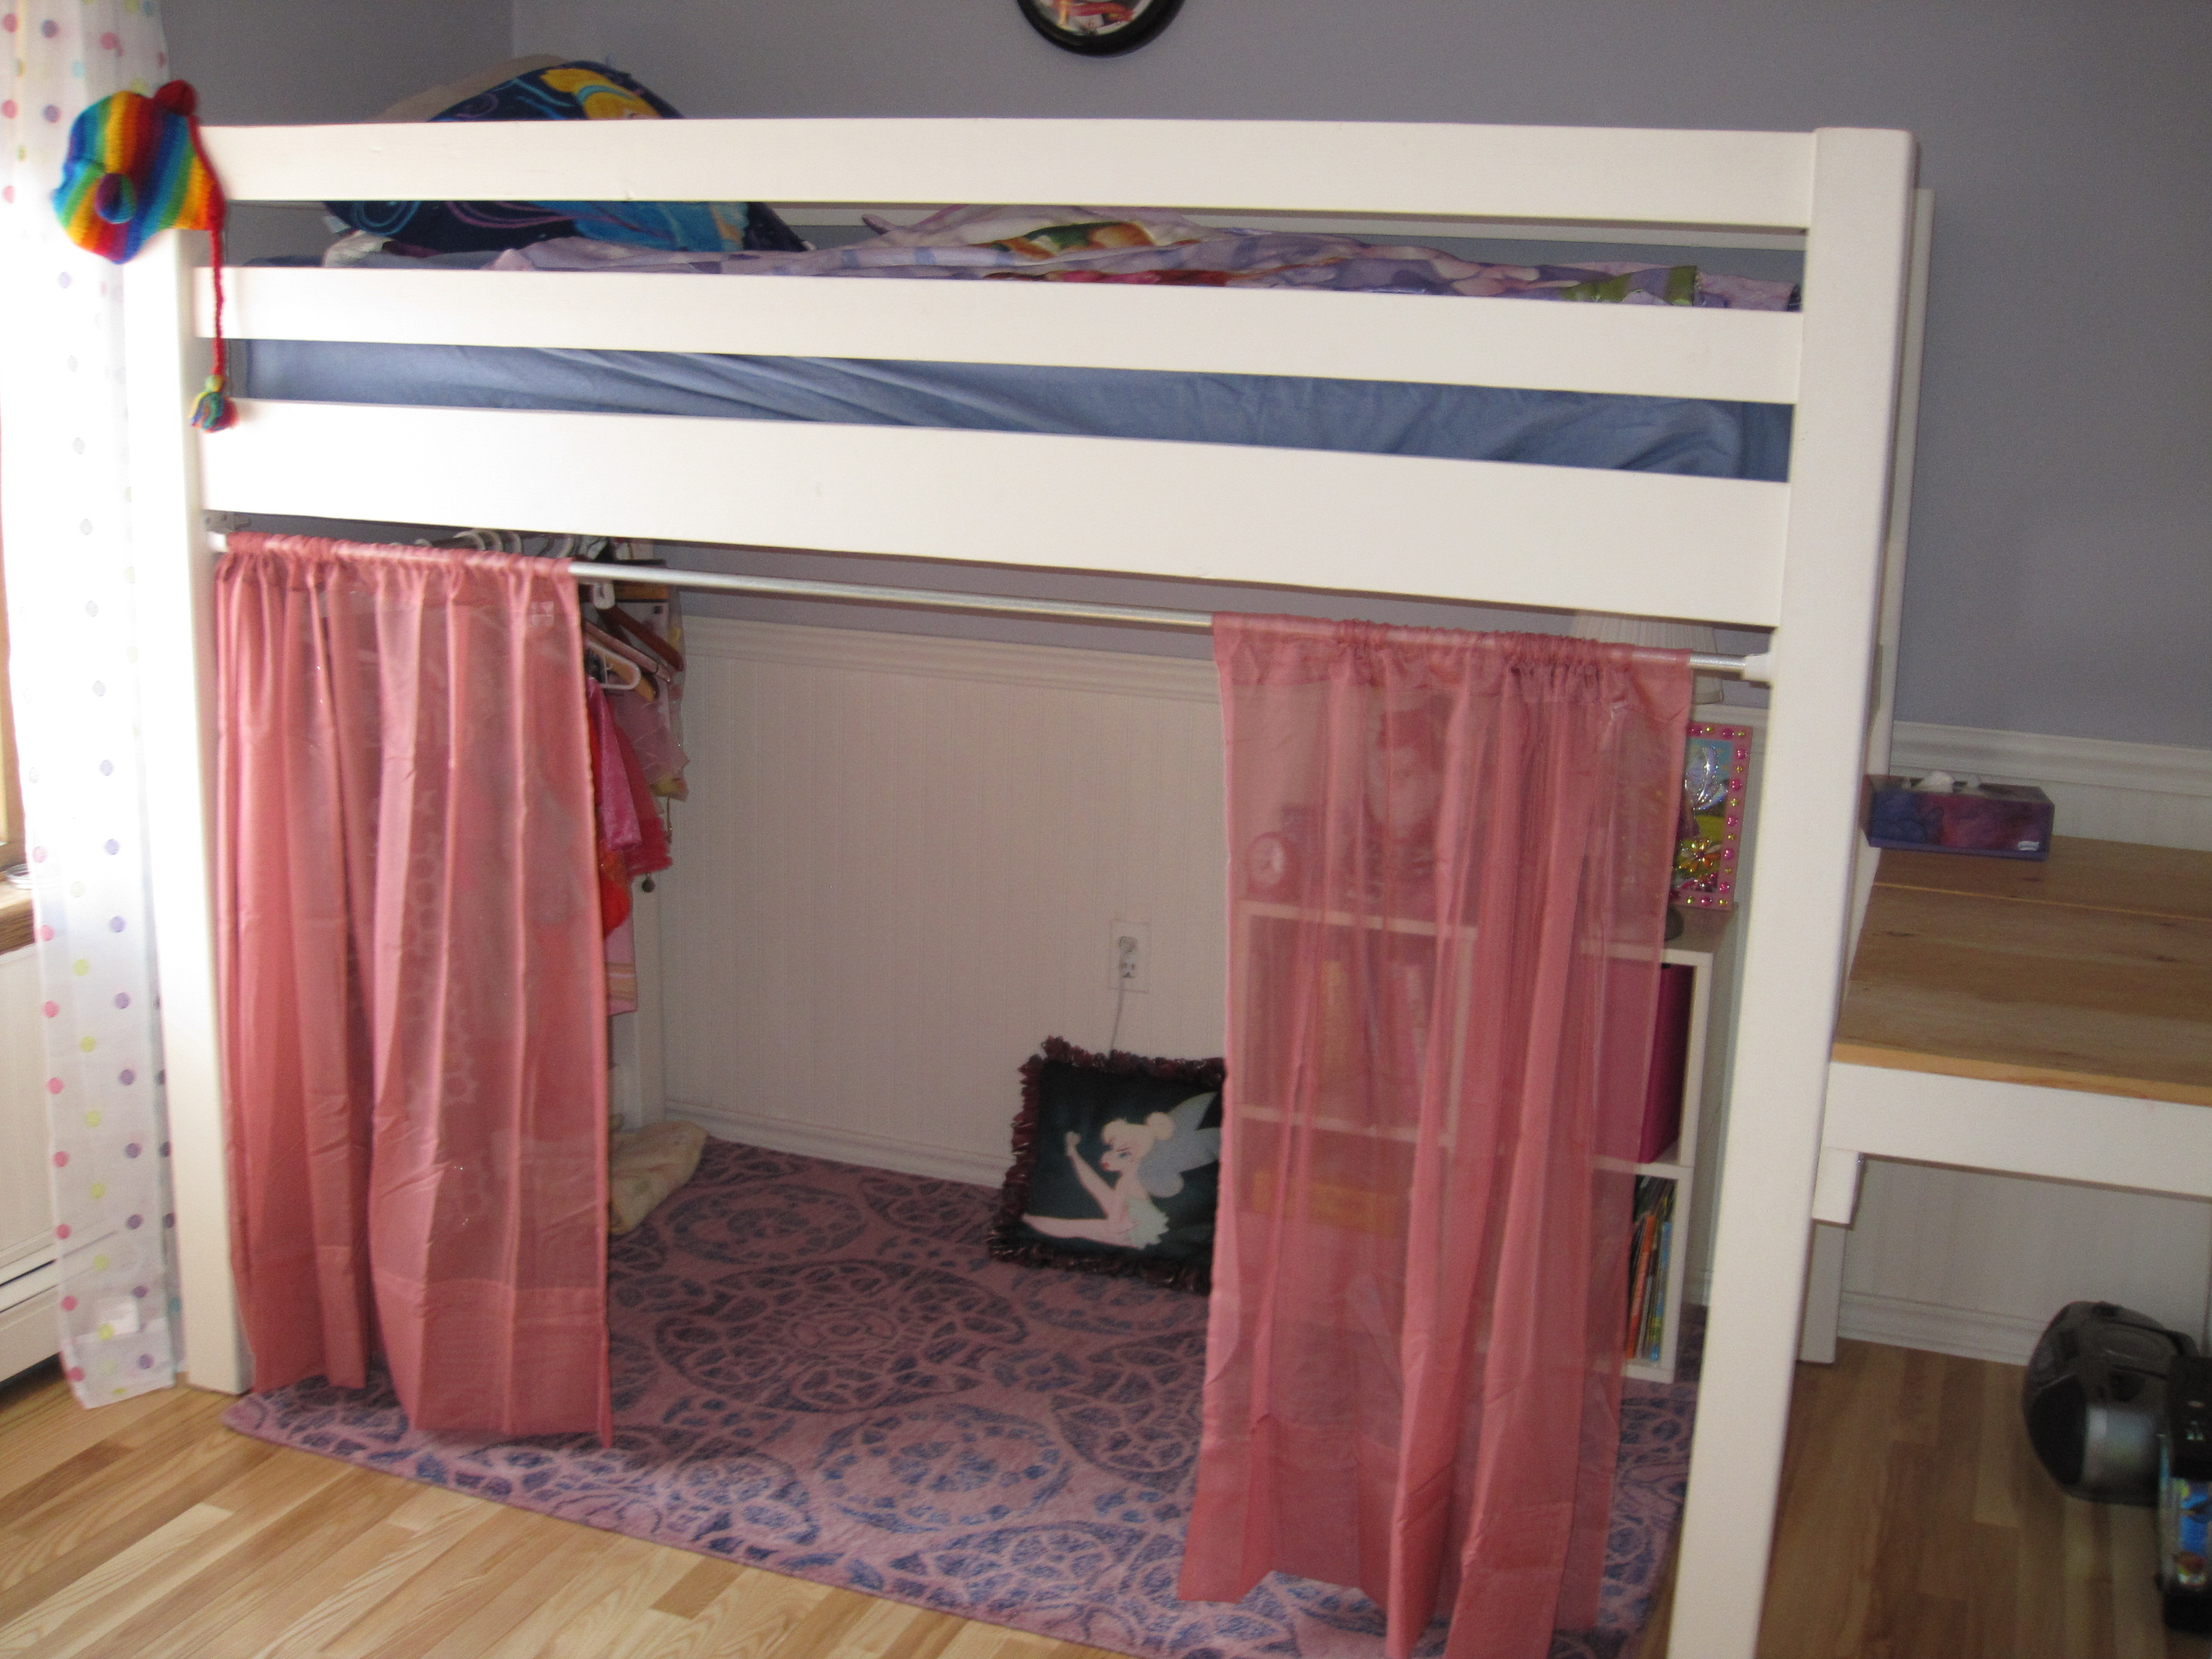 Bunk bed curtains - Ana White Junior Bunk Bed With Curtains And Dress Area Diy Projects